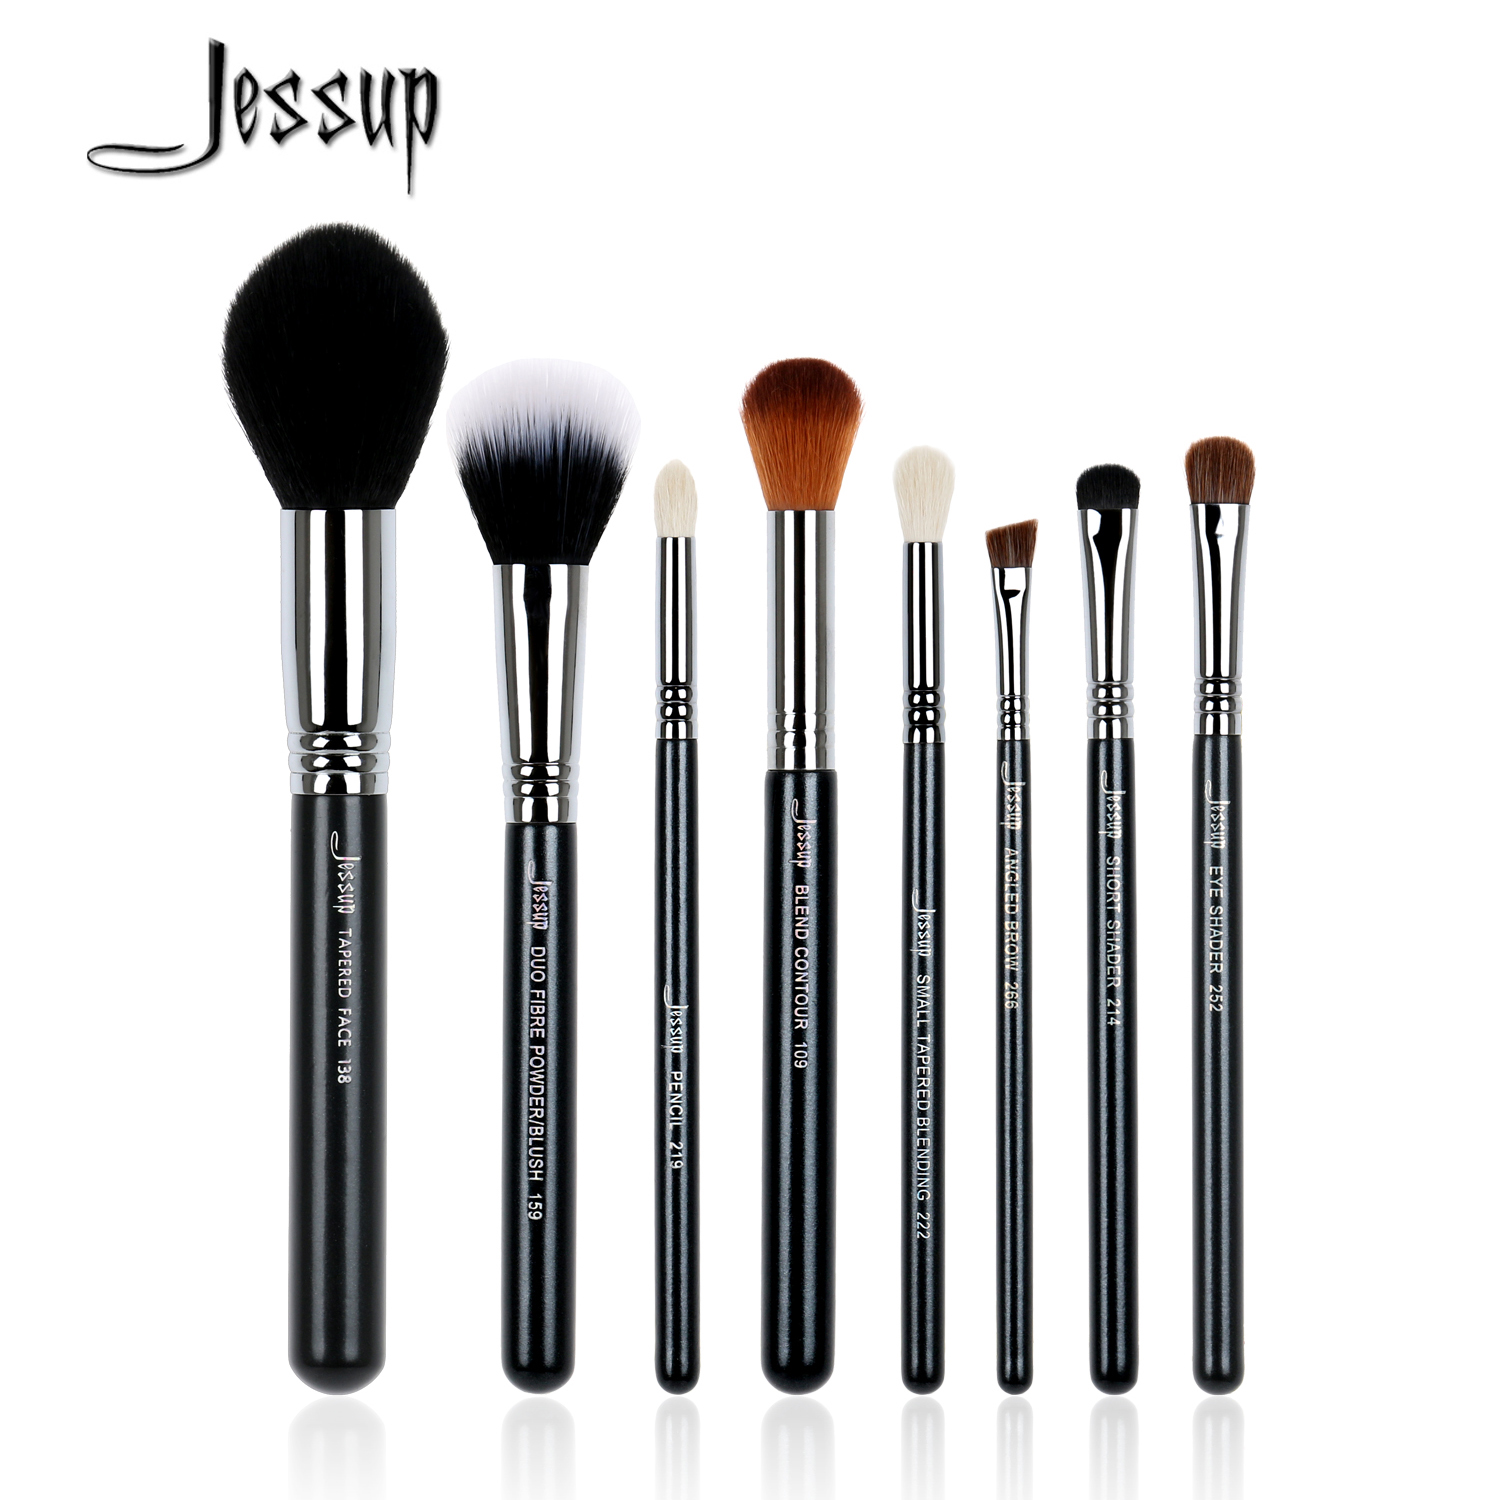 Jessup 8pcs High Quality Pro Makeup Brushes Set Foundation Blend Duo Fibre Contour Shader Powder Make up brush beauty Tools Kits jessup 5pcs black gold makeup brushes sets high quality beauty kits kabuki foundation powder blush make up brush cosmetics tool